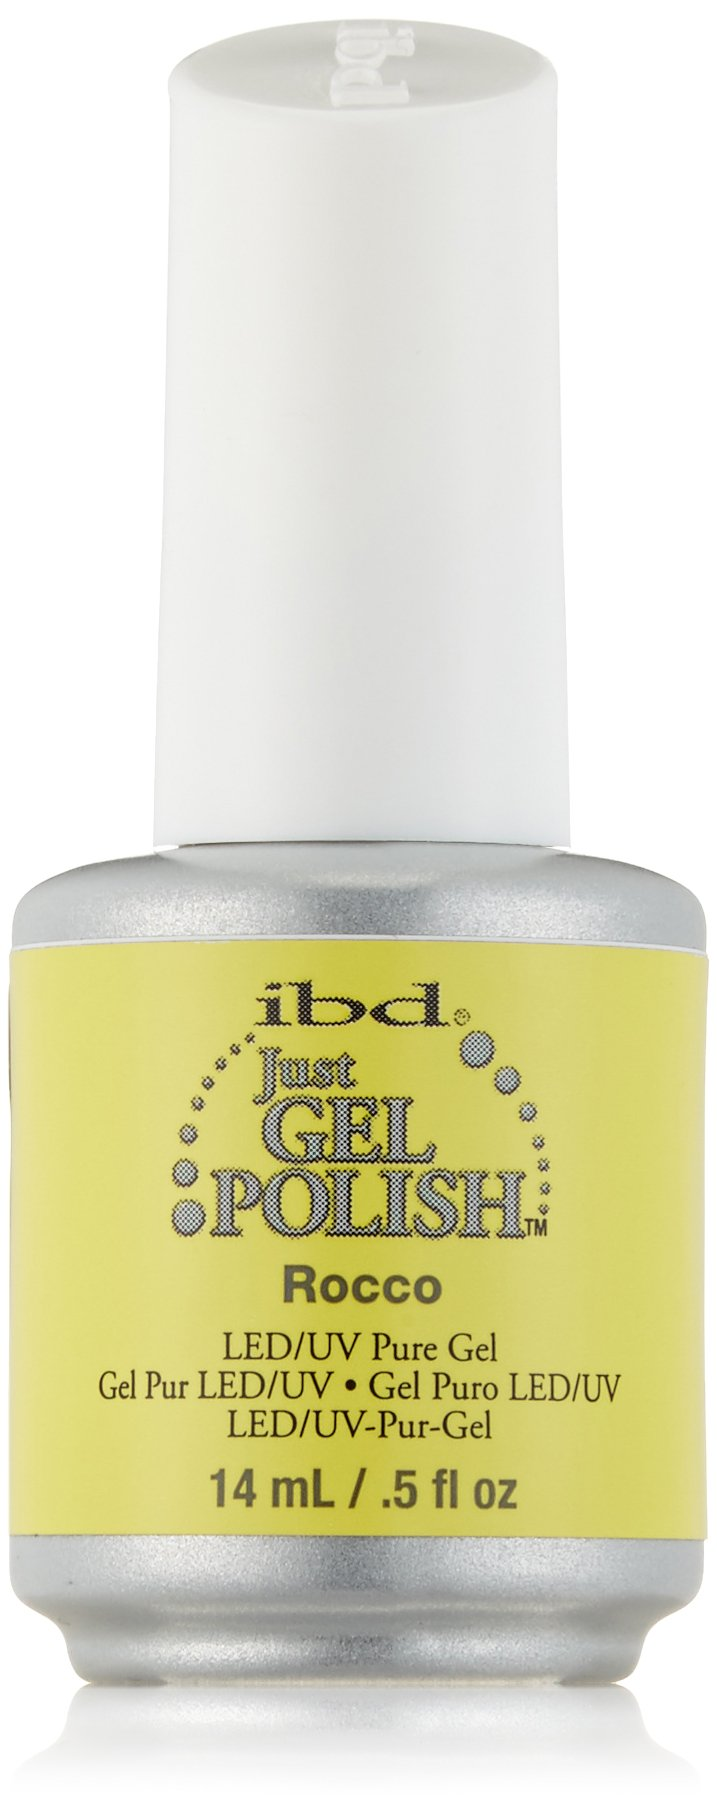 Home ibd just gel polish ibd just gel polish abracadabra - Ibd Just Gel Nail Polish Rocco 0 5 Fluid Ounce